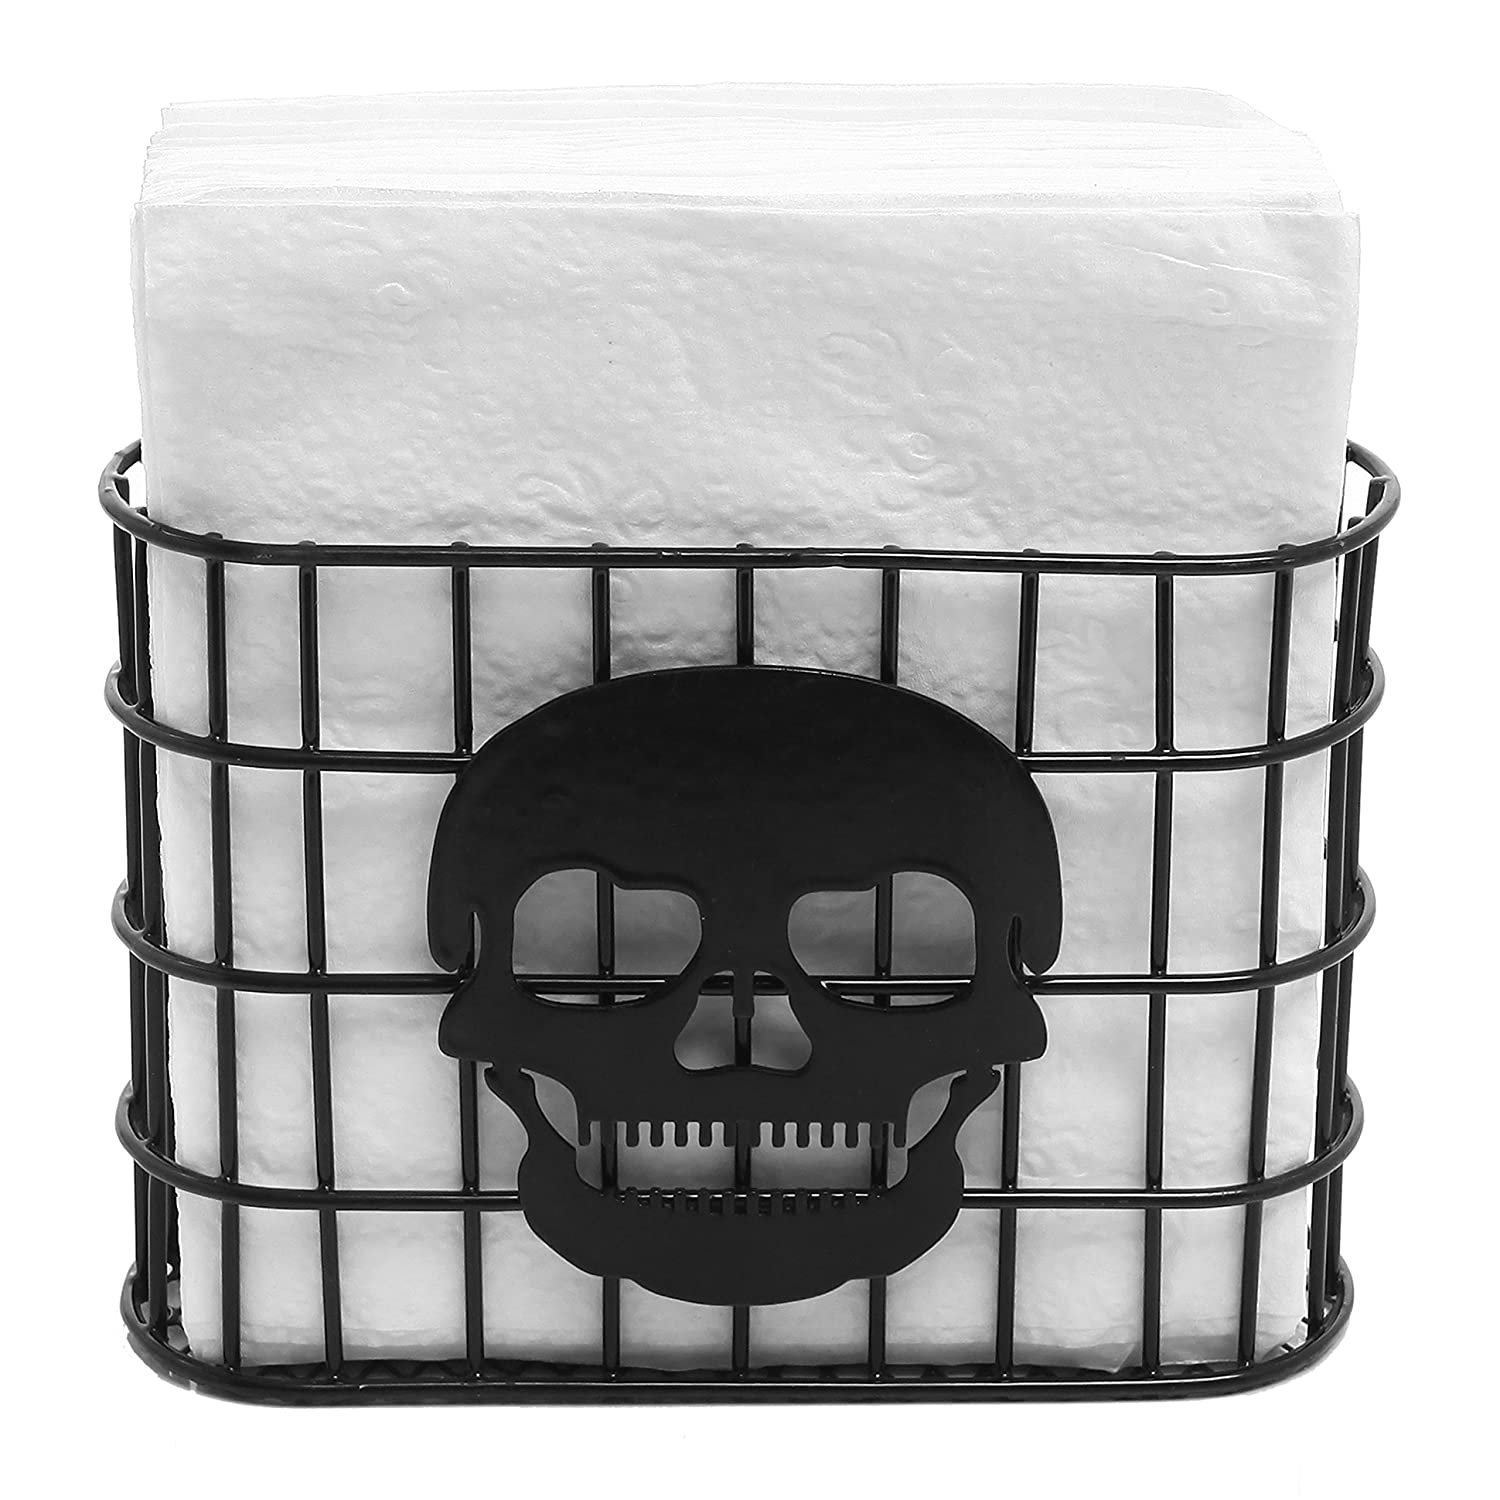 MyGift Skull Design Tabletop Napkin Holder, Metal Wire Paper Towel Dispenser, Black